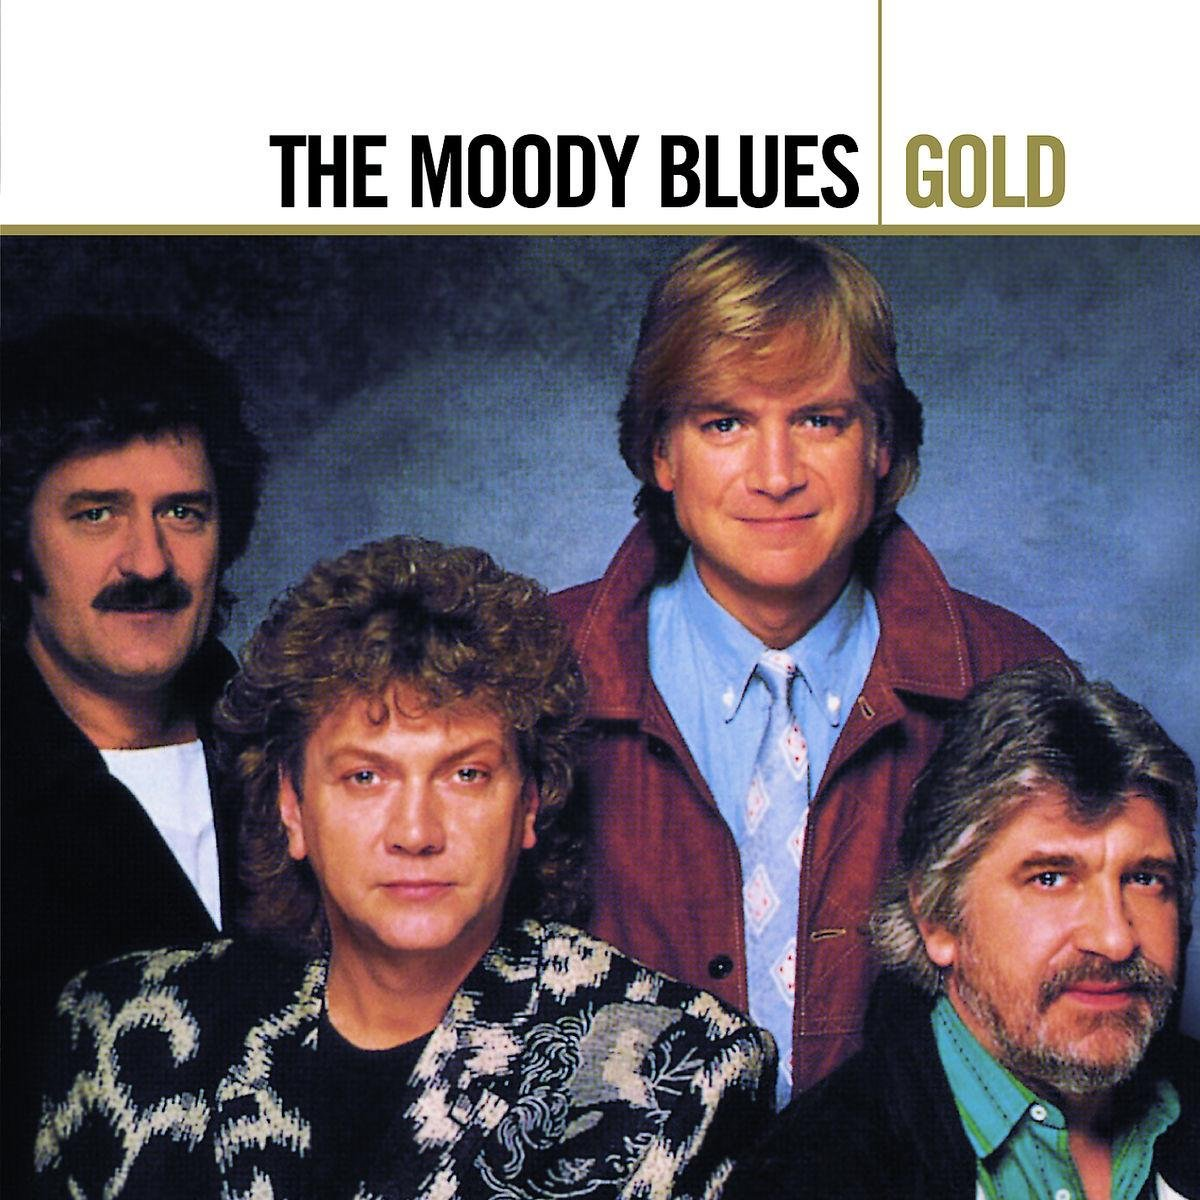 Moody Blues - Gold by Polydor / Umgd